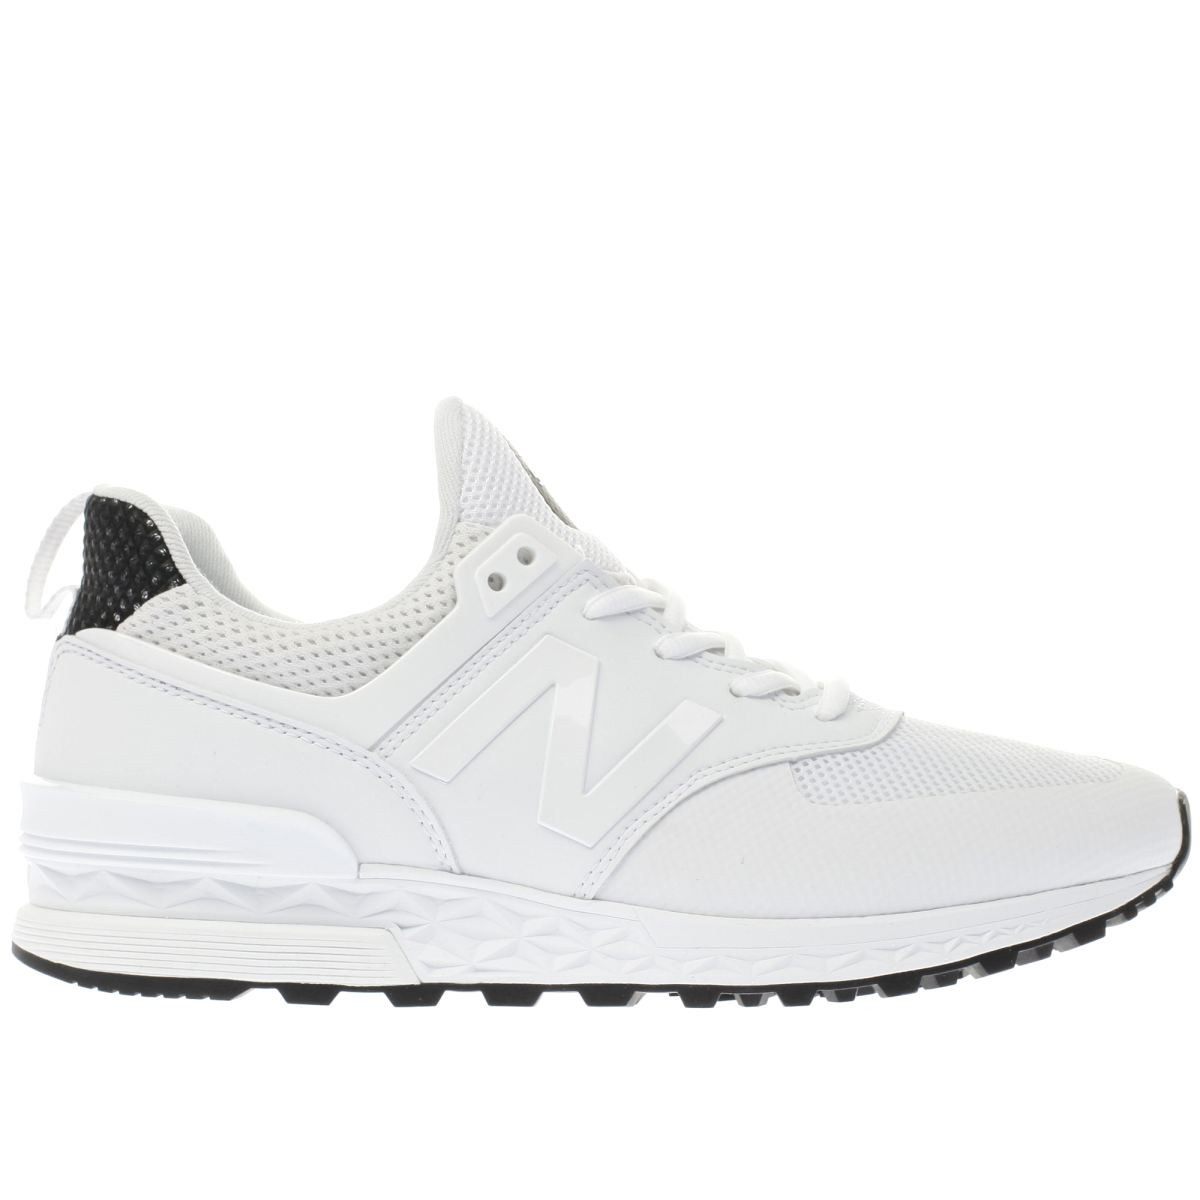 new balance white & black 574 sport trainers